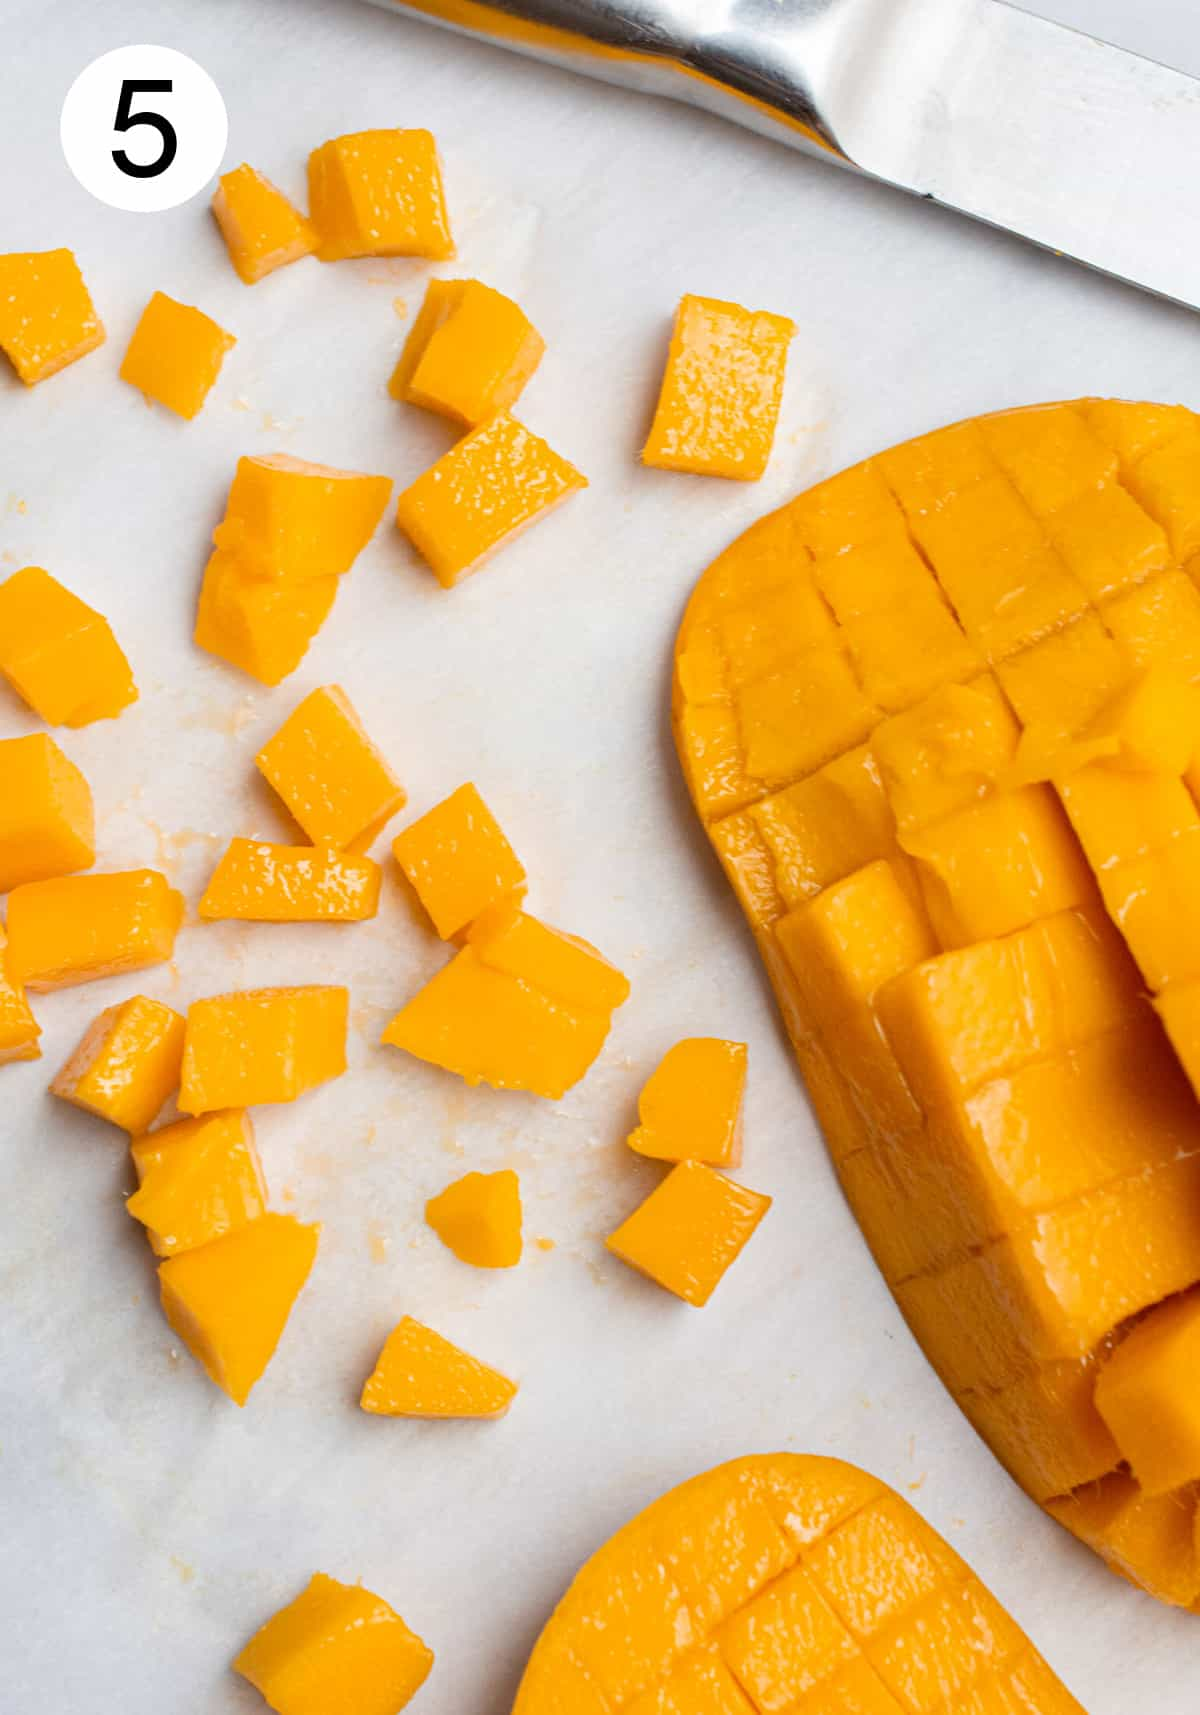 Cubes cut off of the mango skin laying on parchment paper.